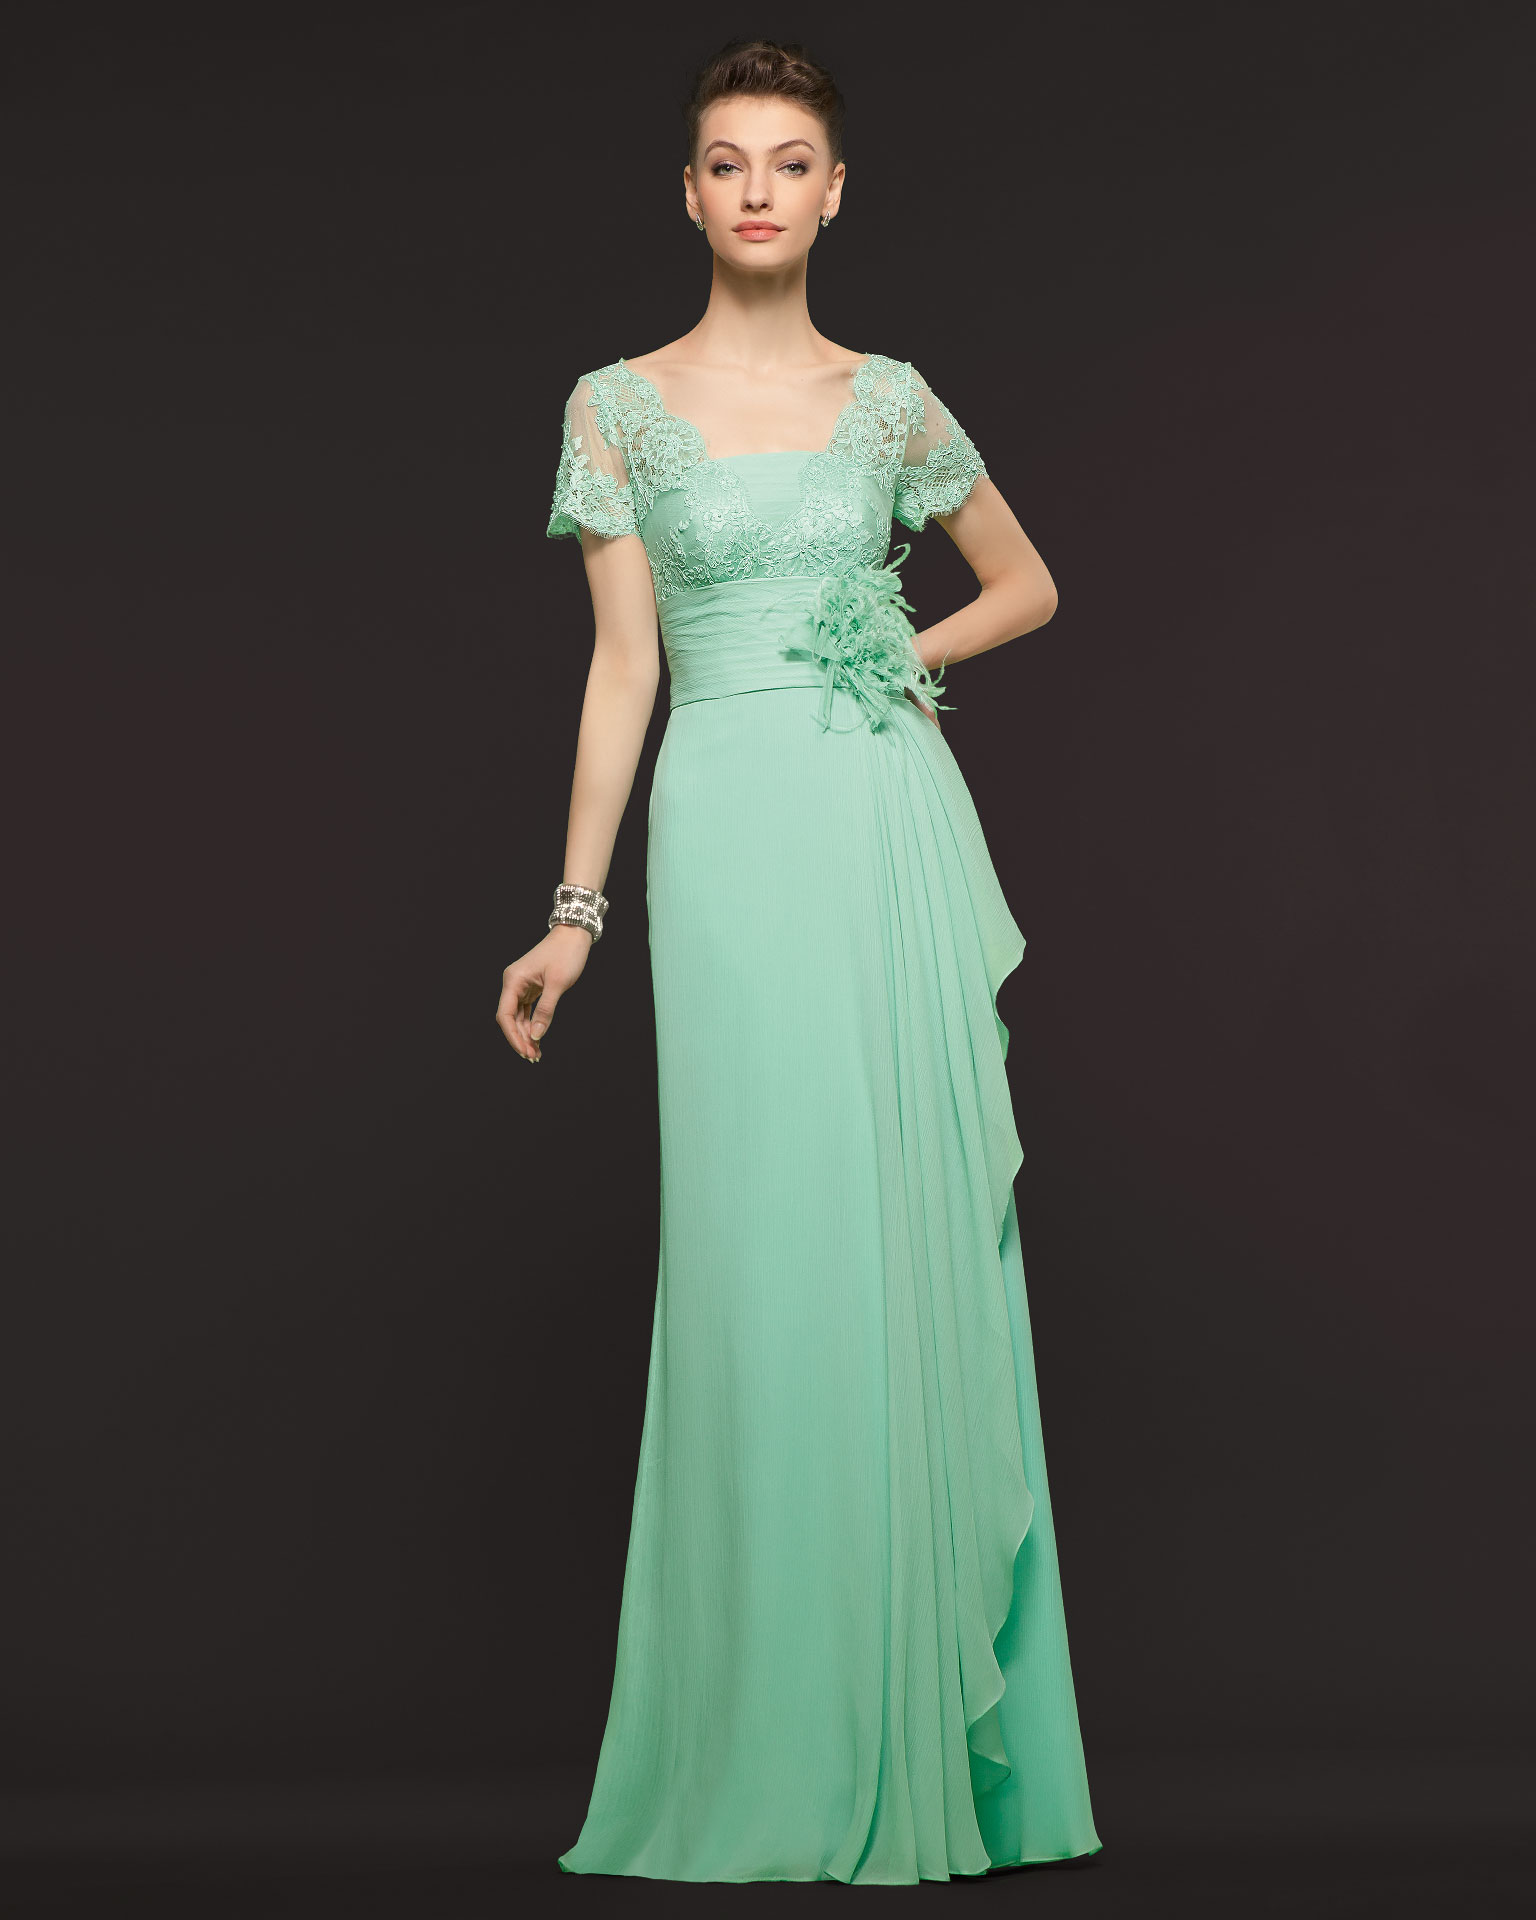 Charming Sheath/Column Short Sleeved Lace Ruching Floor-length Chiffon Prom Dresses